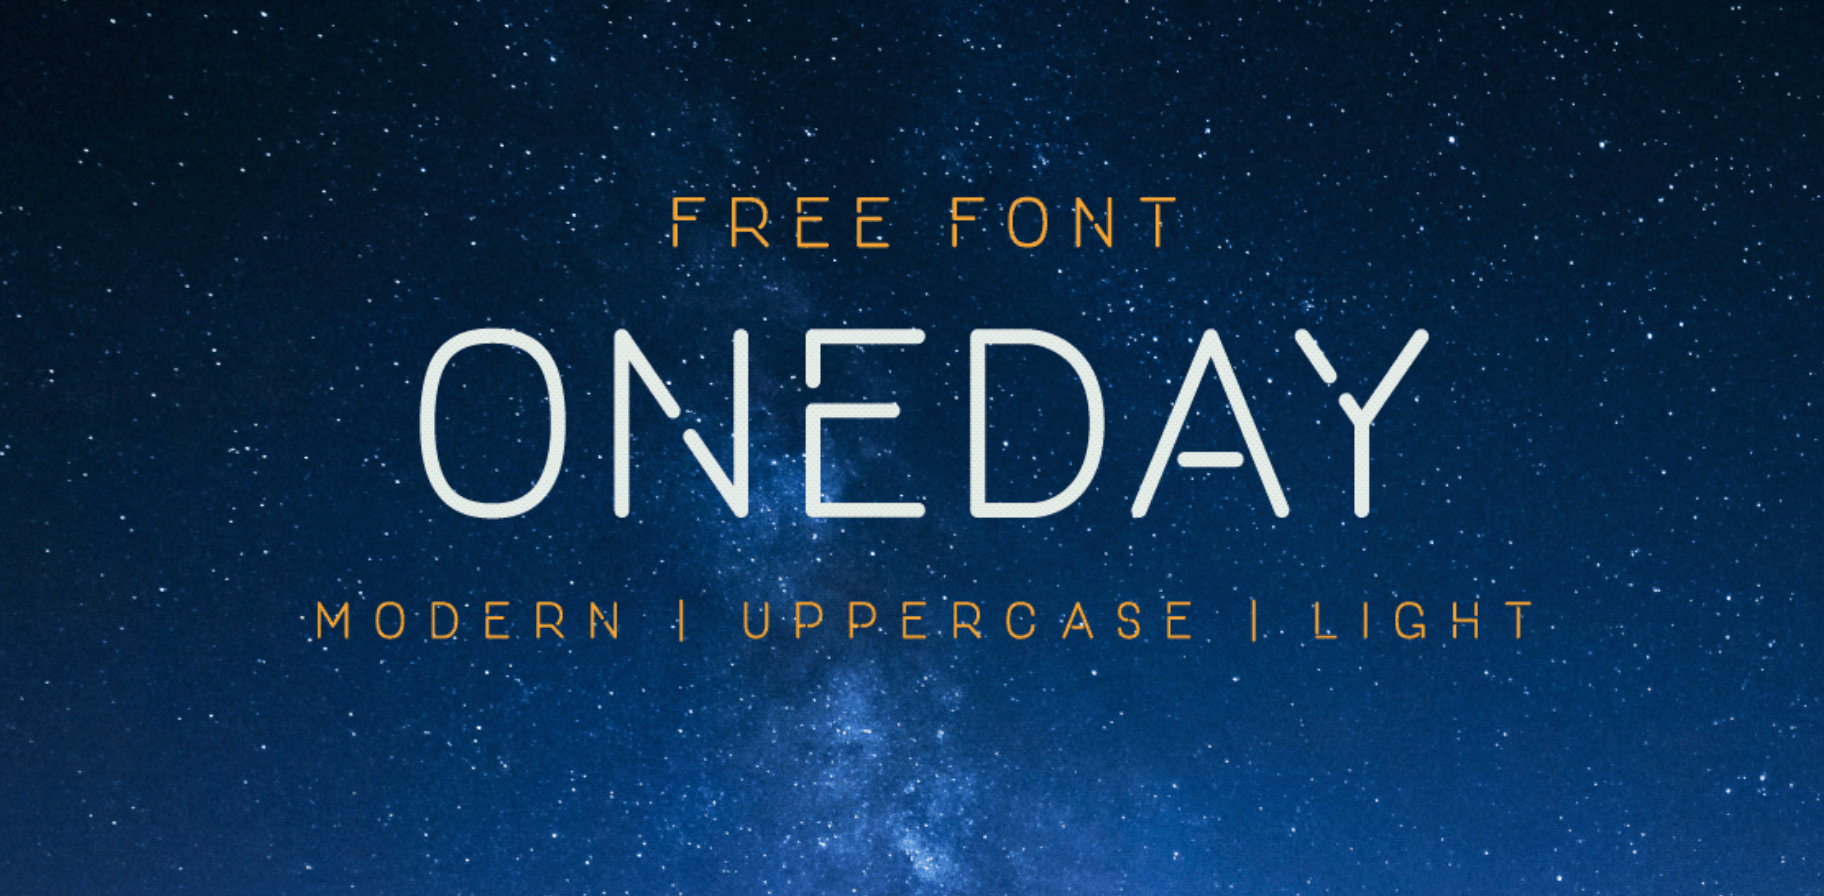 capital letters font for dyslexic users